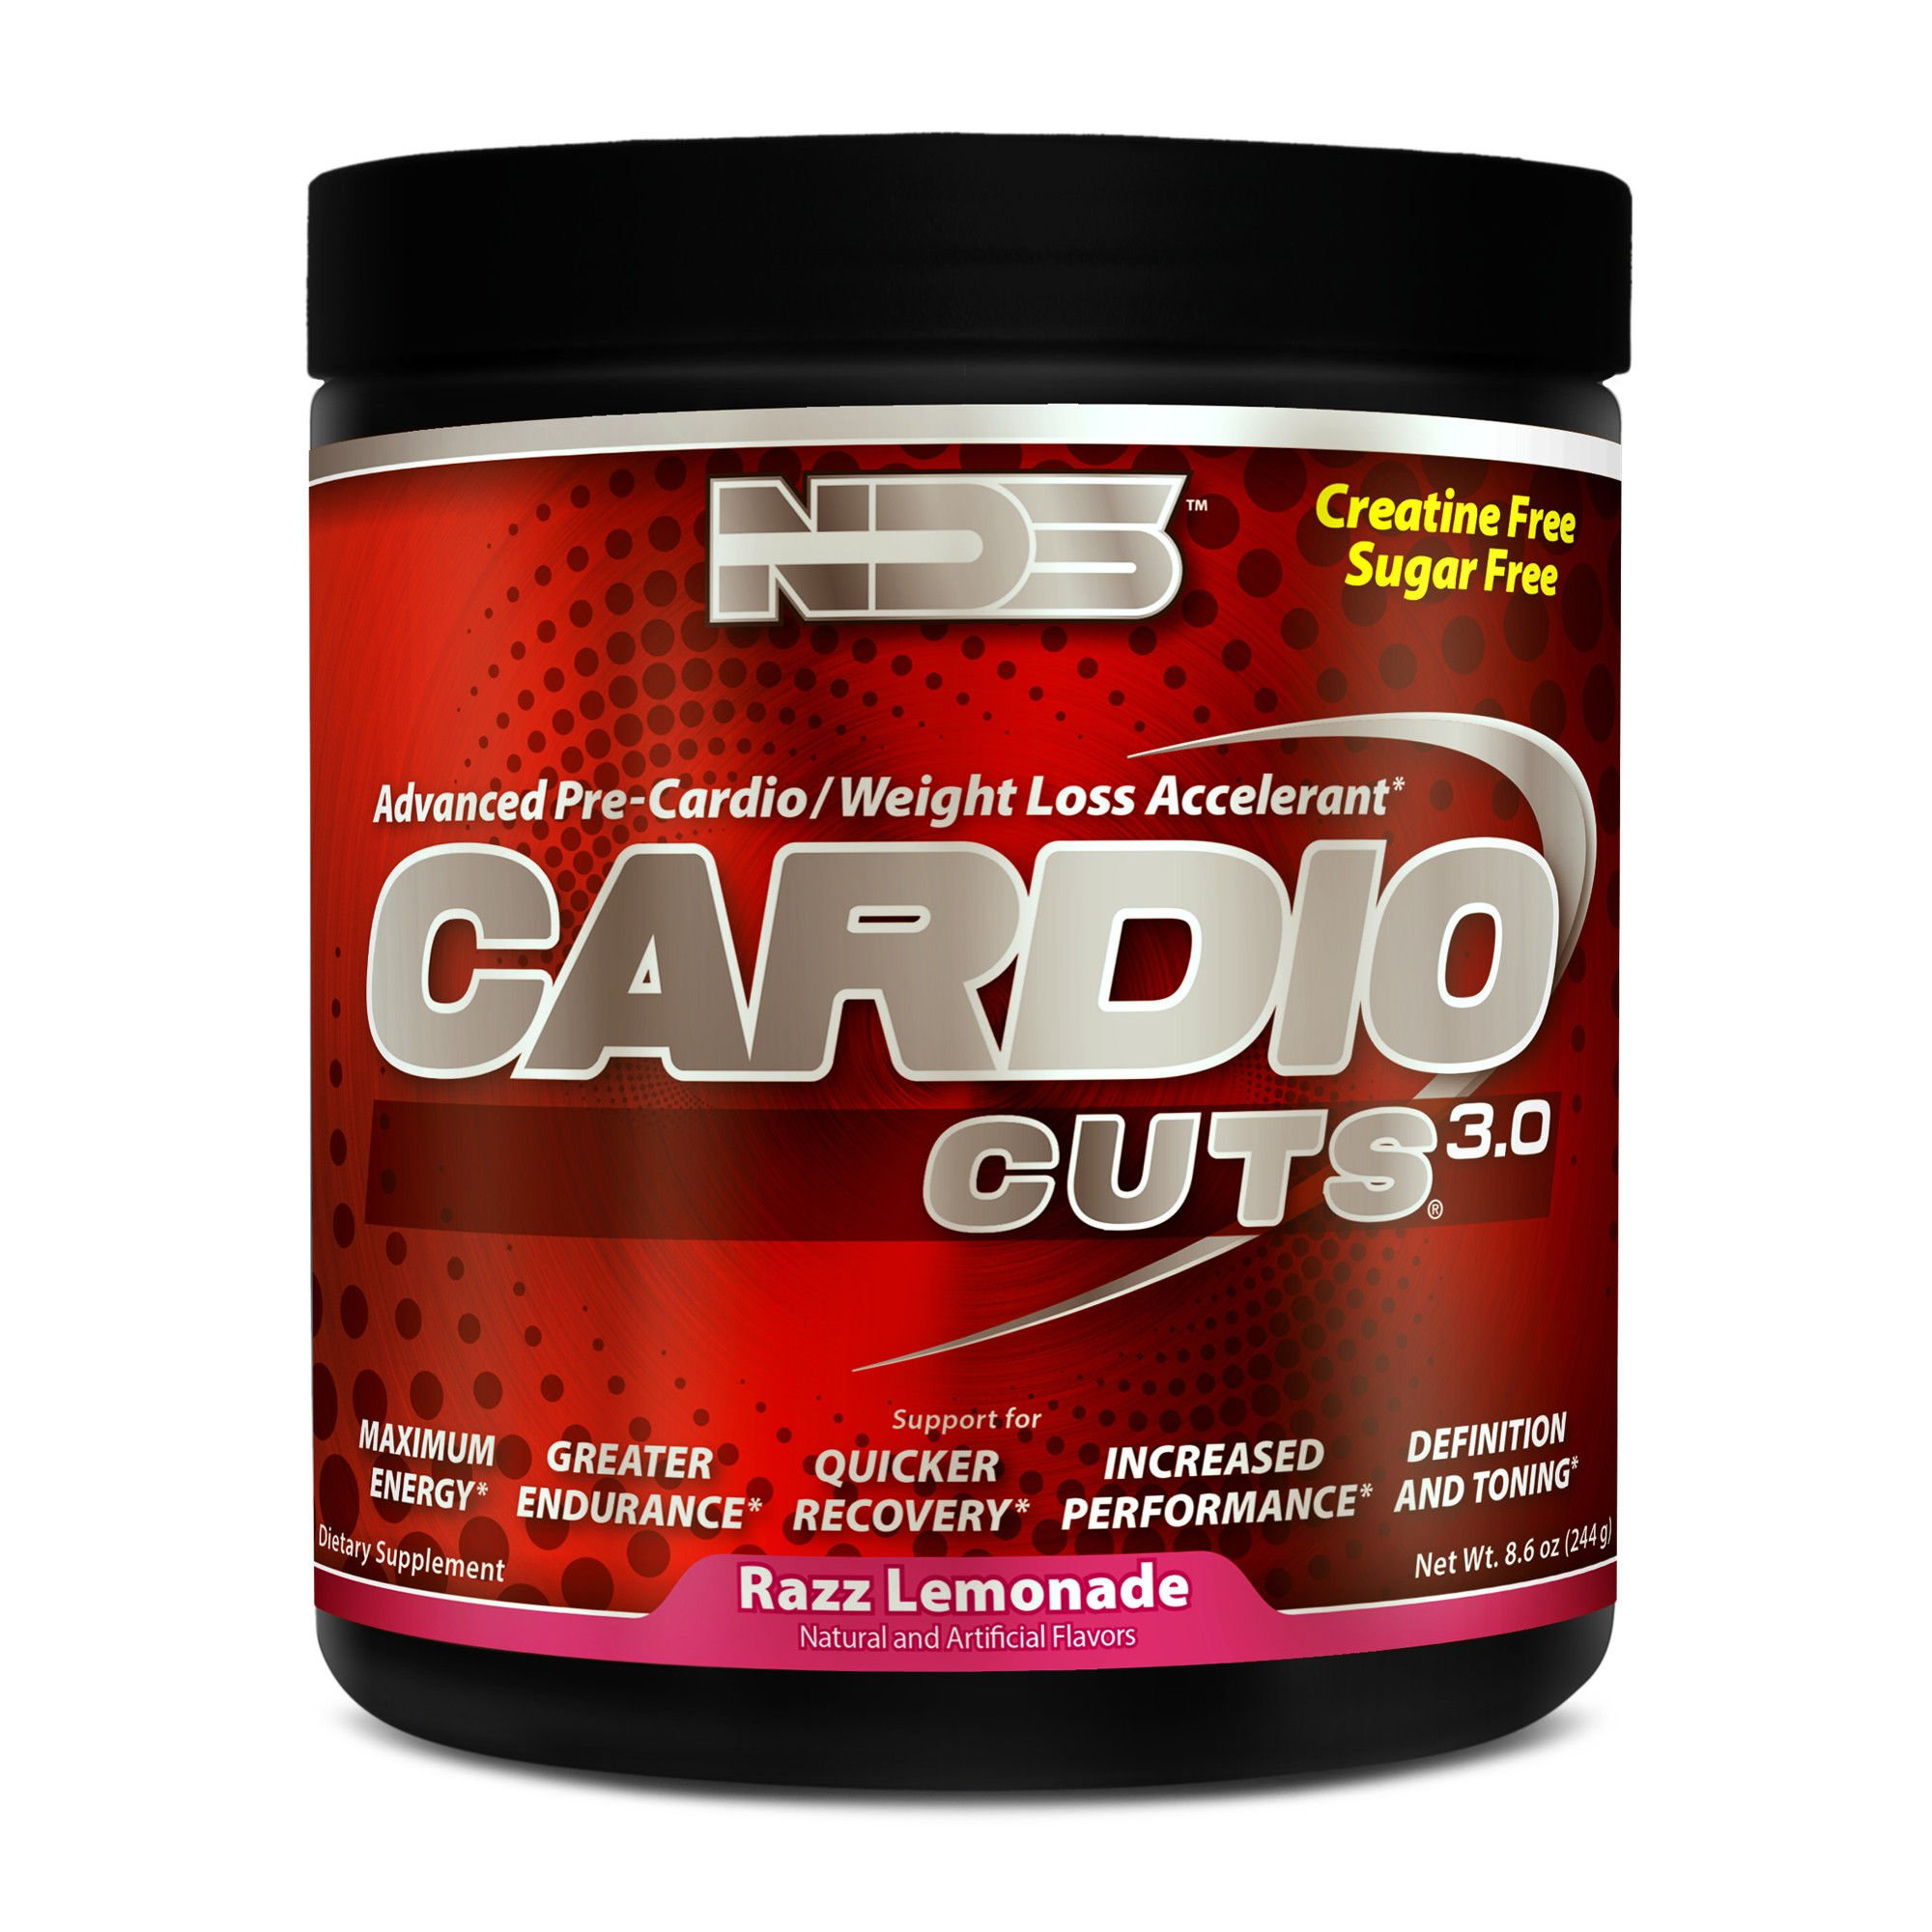 NDS Nutrition Cardio Cuts 3.0 - Advanced Pre-Cardio And Weight Loss Formula WIth L-Carnitine - Maximum Energy, Greater Endurance, Faster Recovery, Increased Performance - Razz Lemonade - 40 Servings …